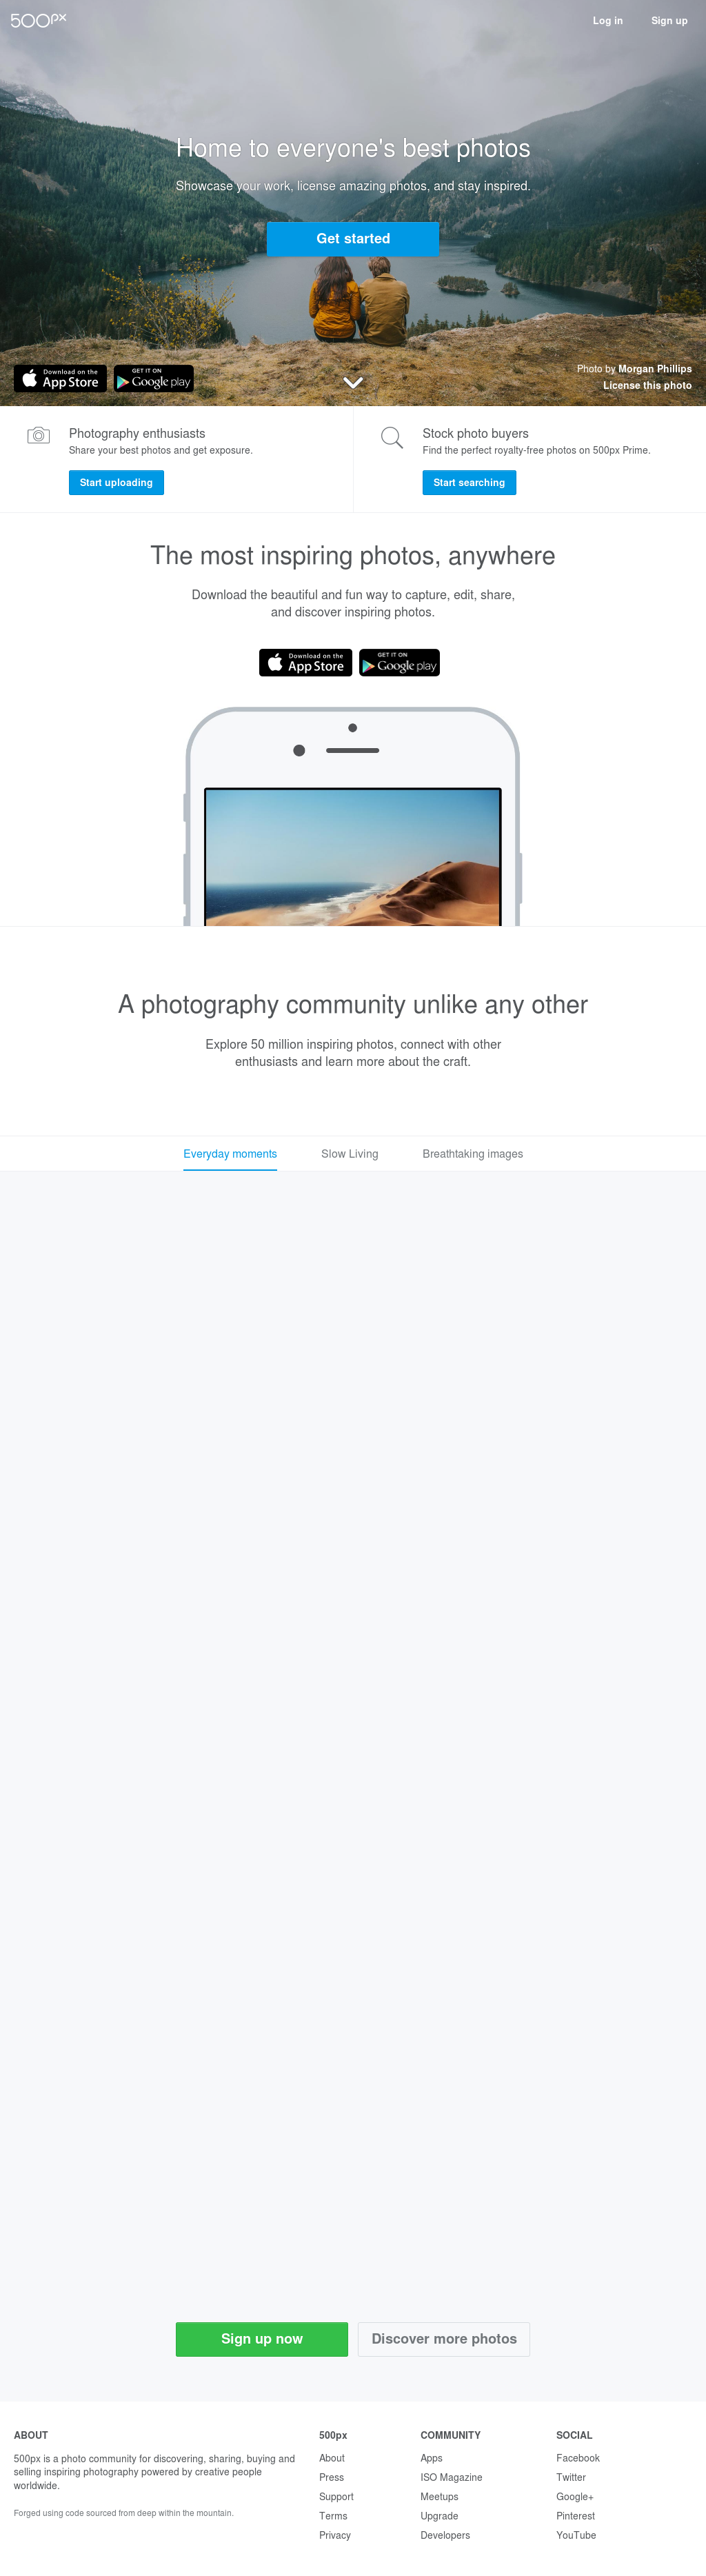 500px Competitors, Revenue and Employees - Owler Company Profile